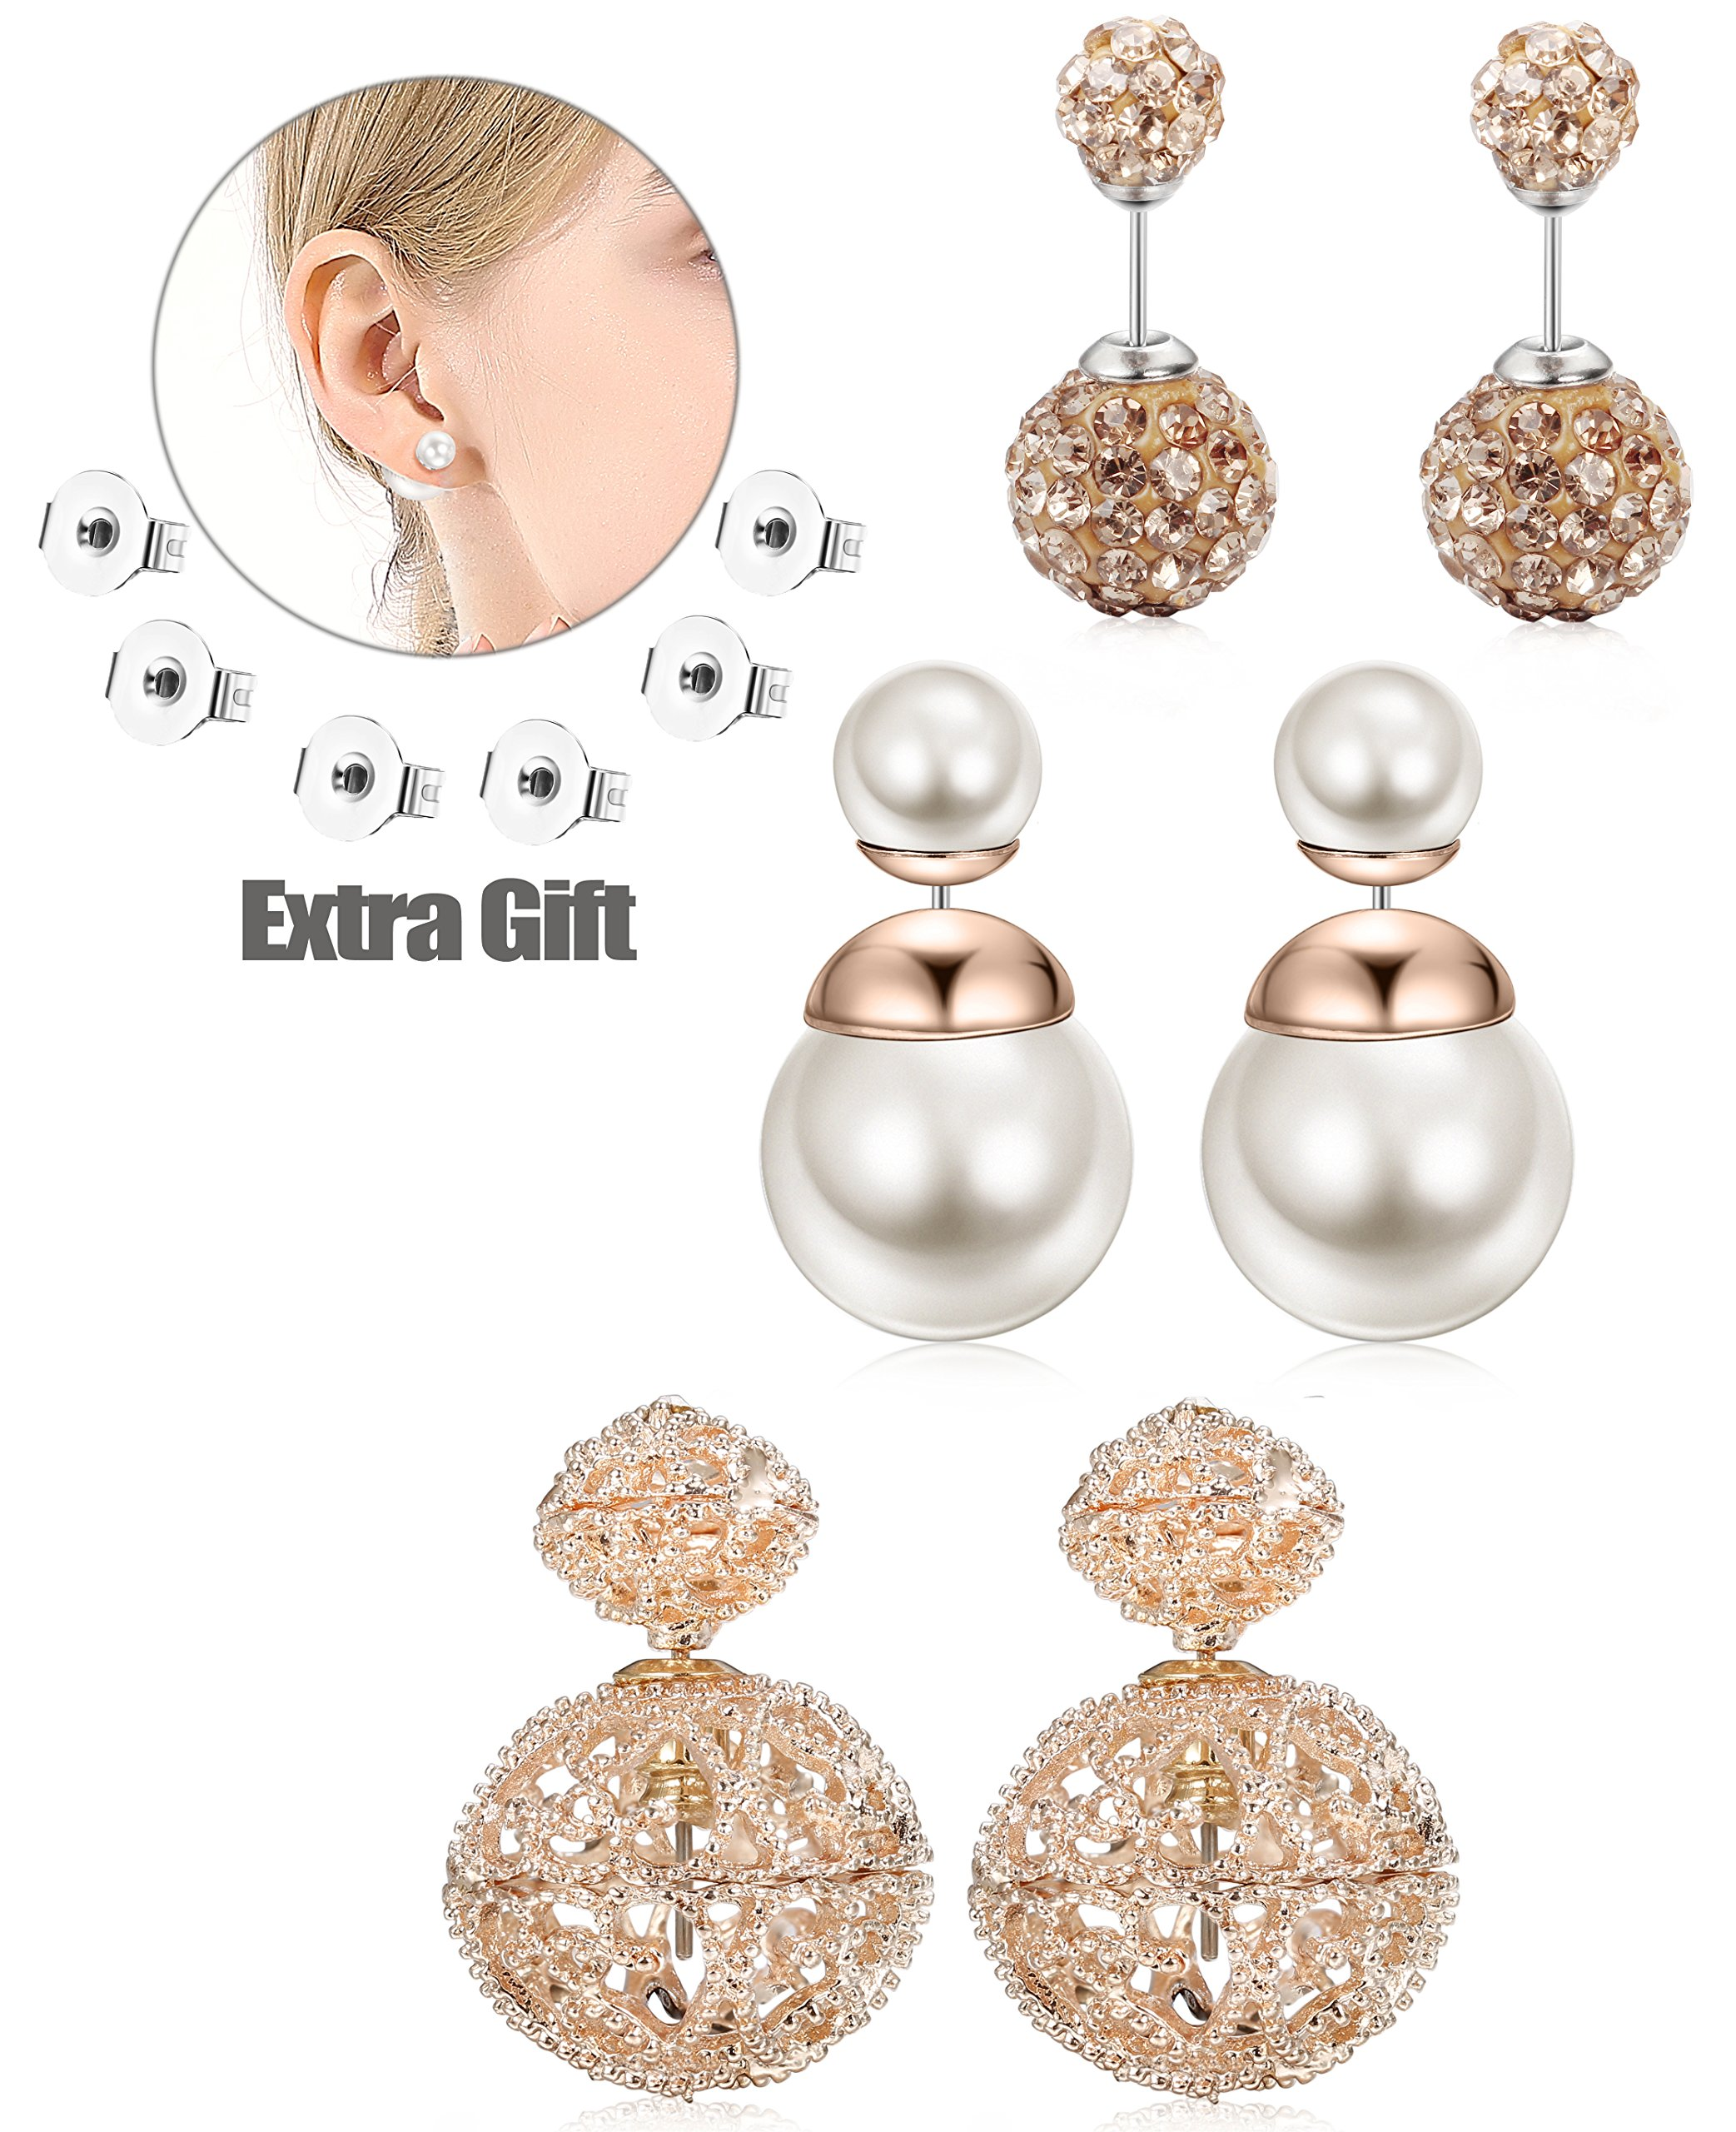 JOERICA 3 Pairs Vintage Hollow Out Womens Double Side Round Ball Stud Earrings Rose-gold